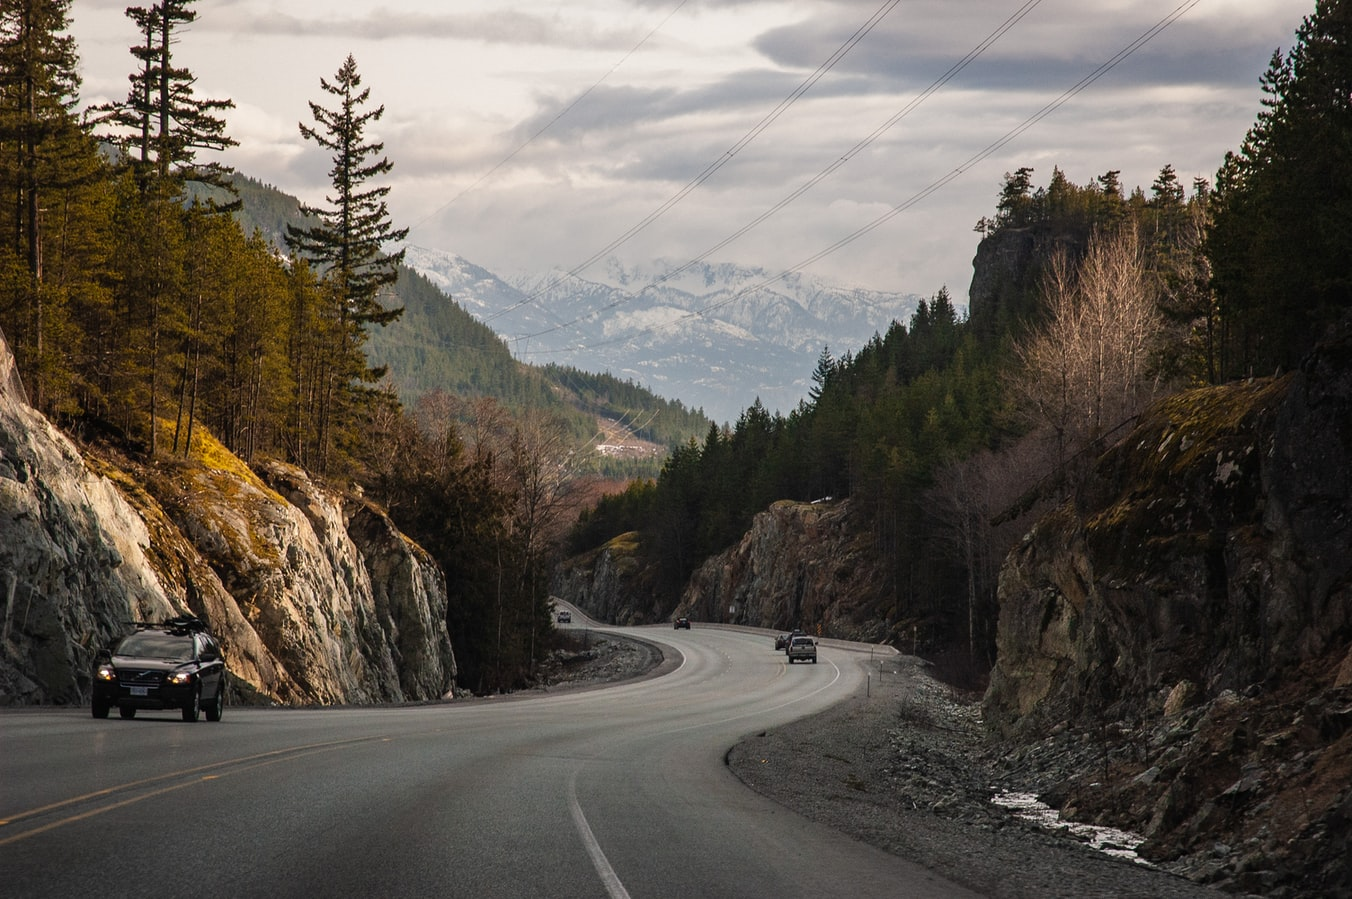 Cars driving down a mountainous road